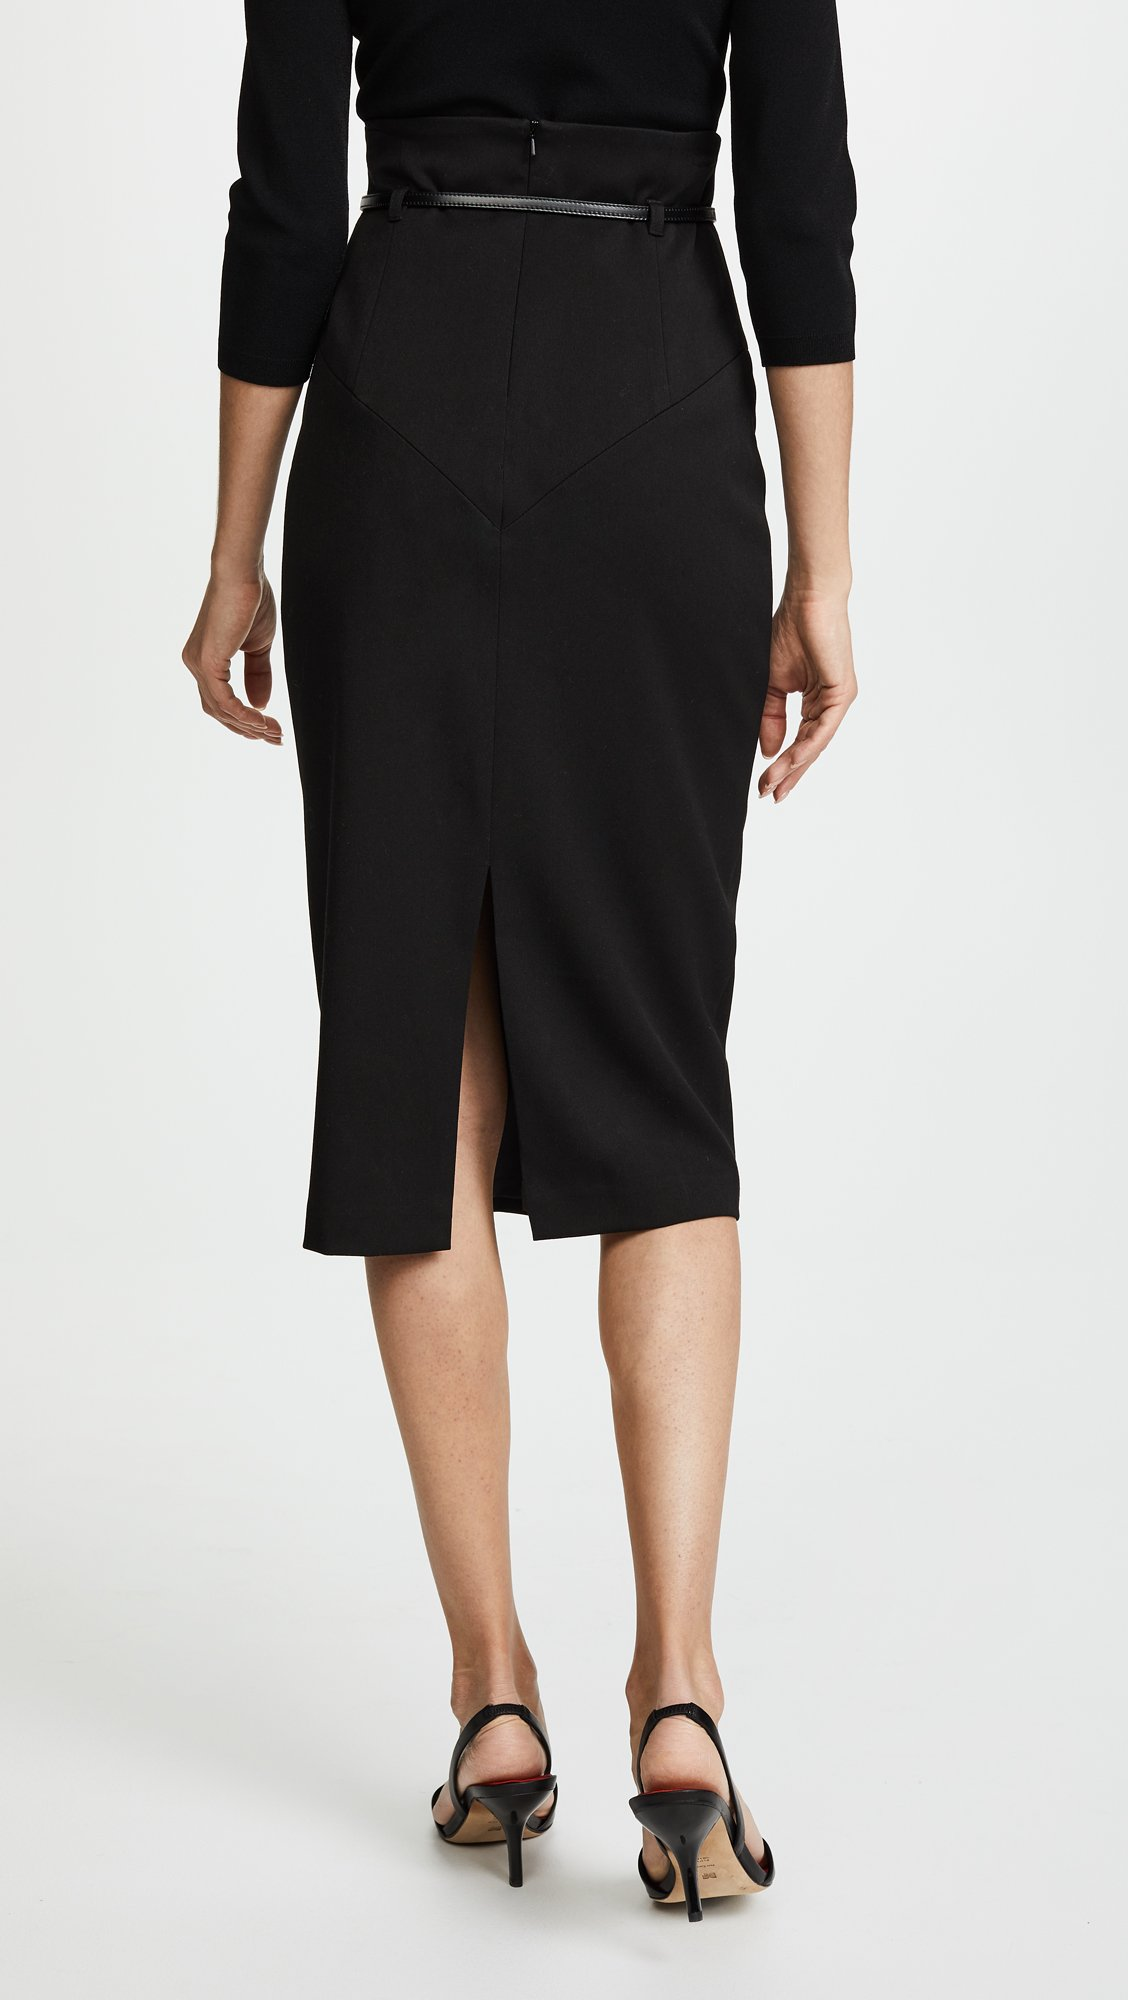 Black Halo Women's High Waisted Pencil Skirt, Black, 10 by Black Halo (Image #3)